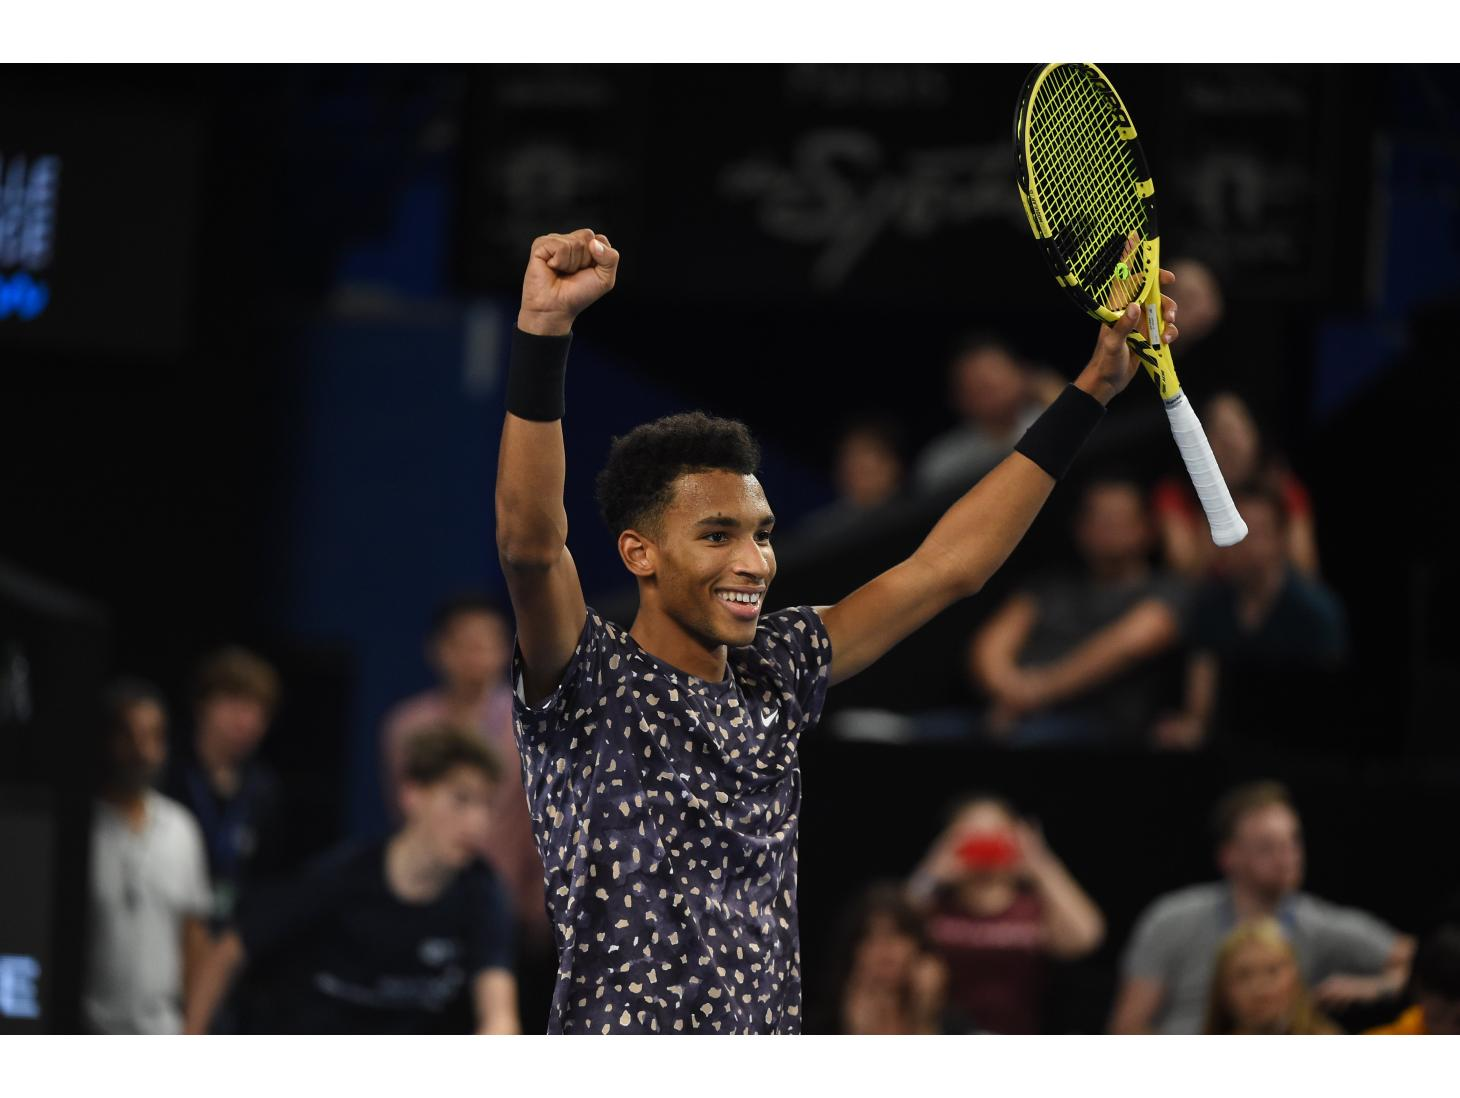 Auger-Aliassime in the final